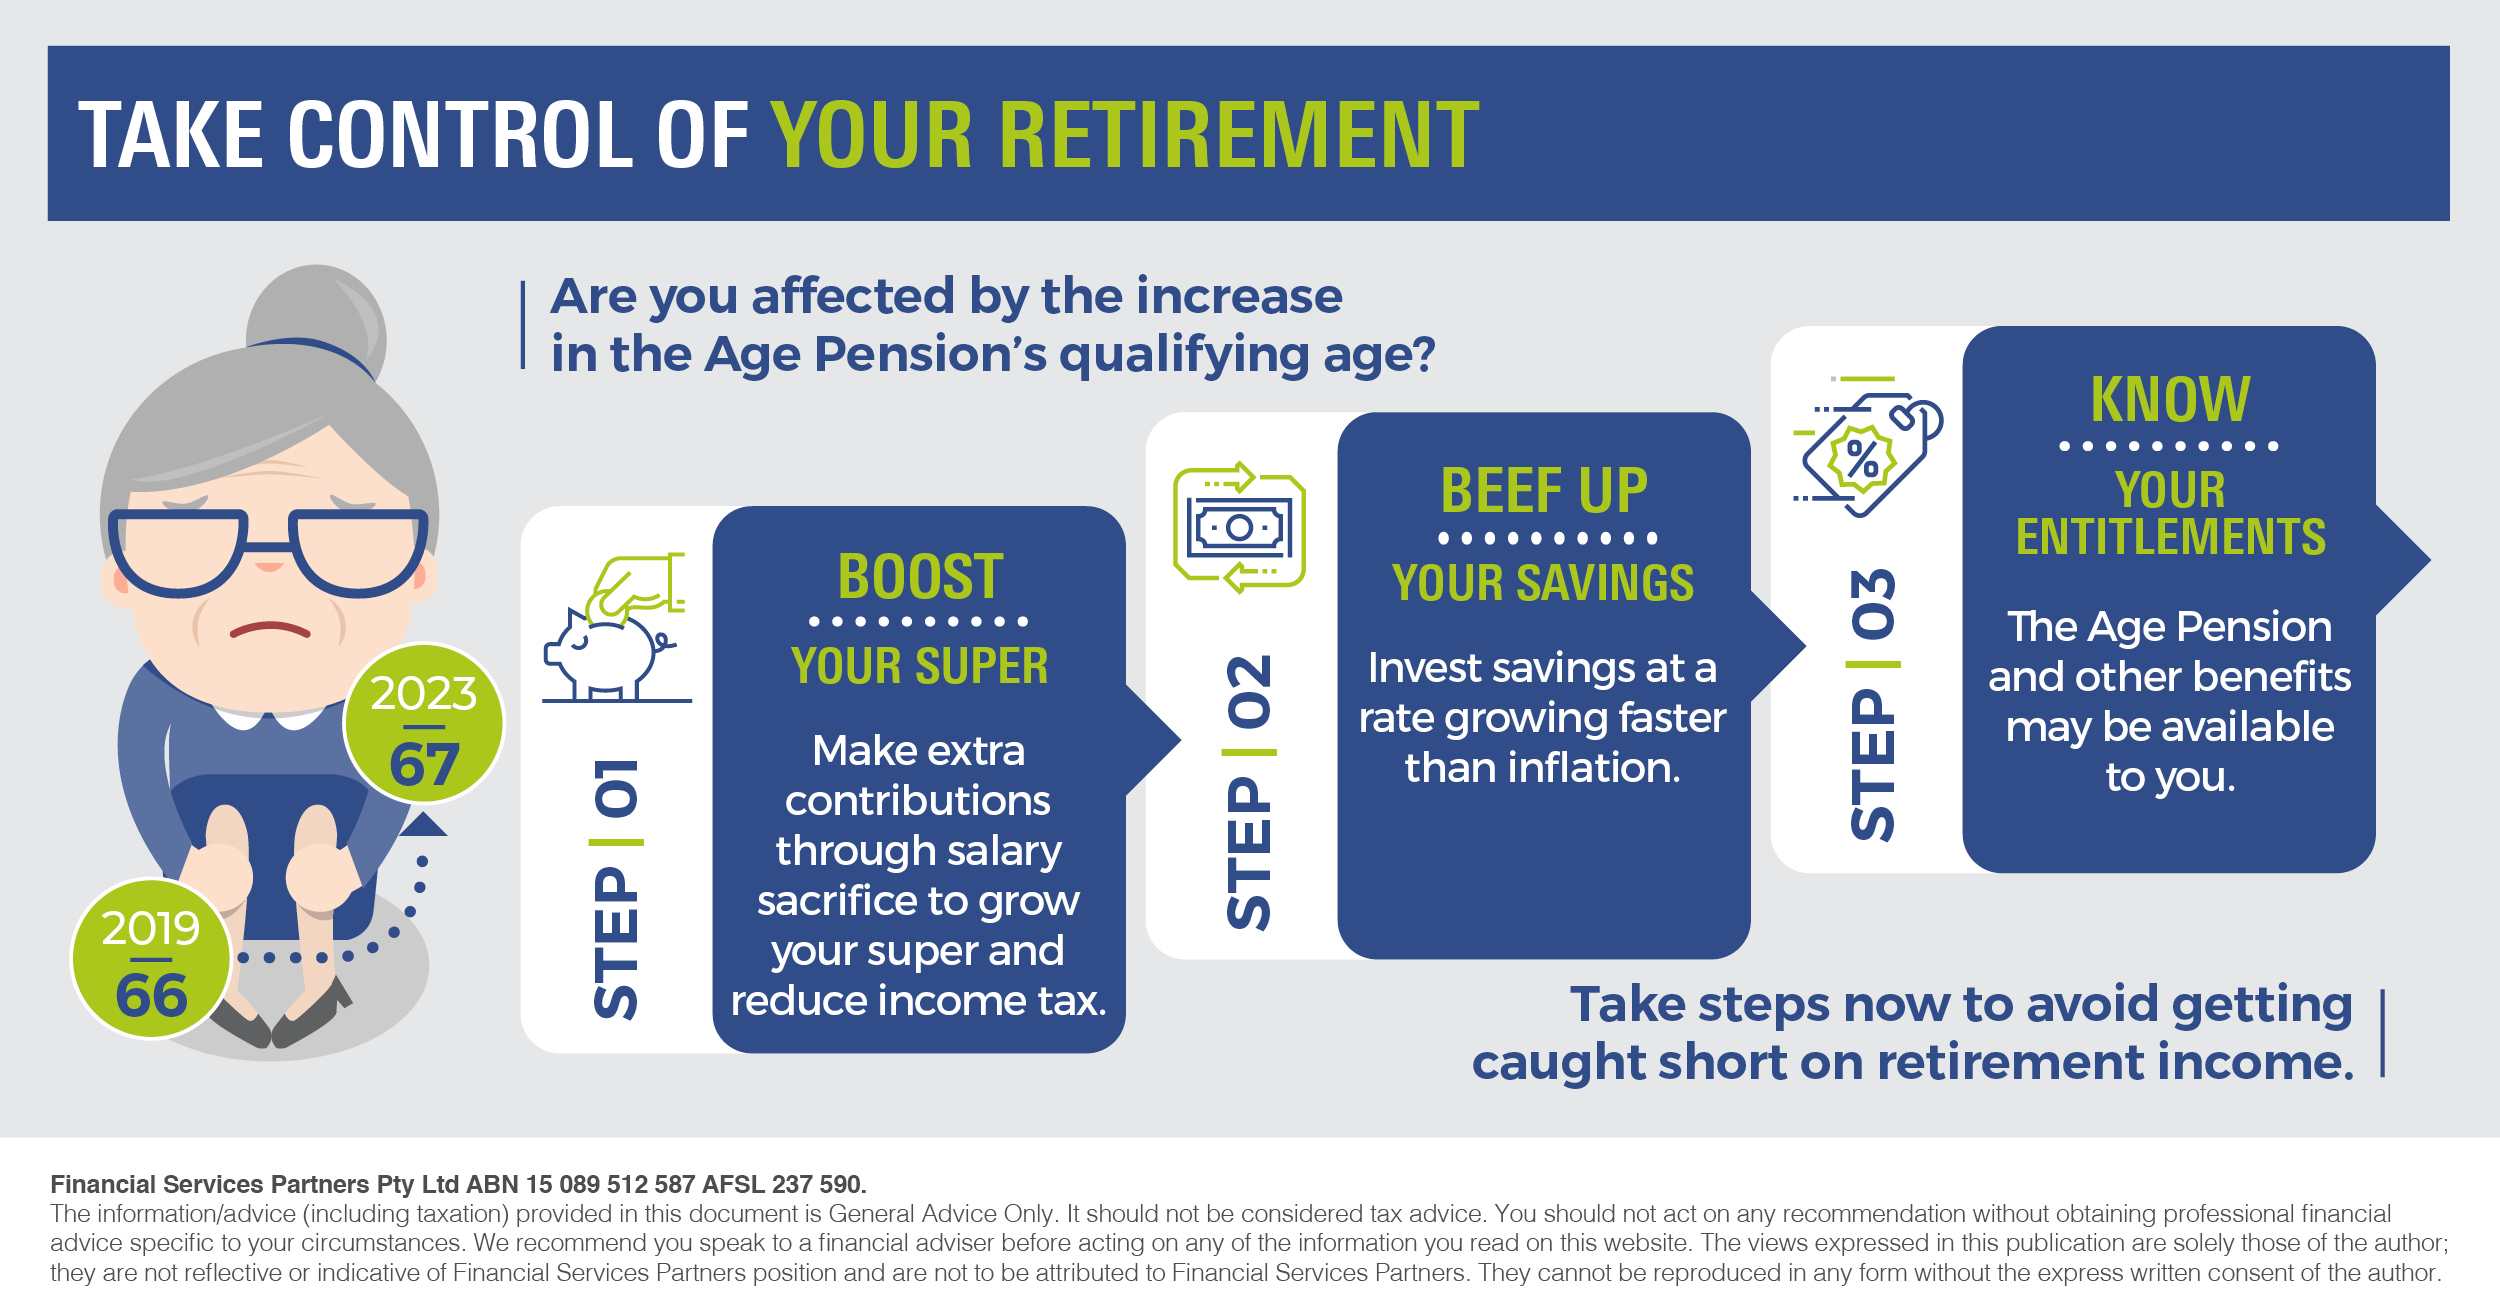 Kelly 2 MASTER:Design:Kate Hage Working:Article Hub:Social Media Infographics:Wordpress Infographics:For sharing:Infographic_Take control of your retirement_FSP.jpg